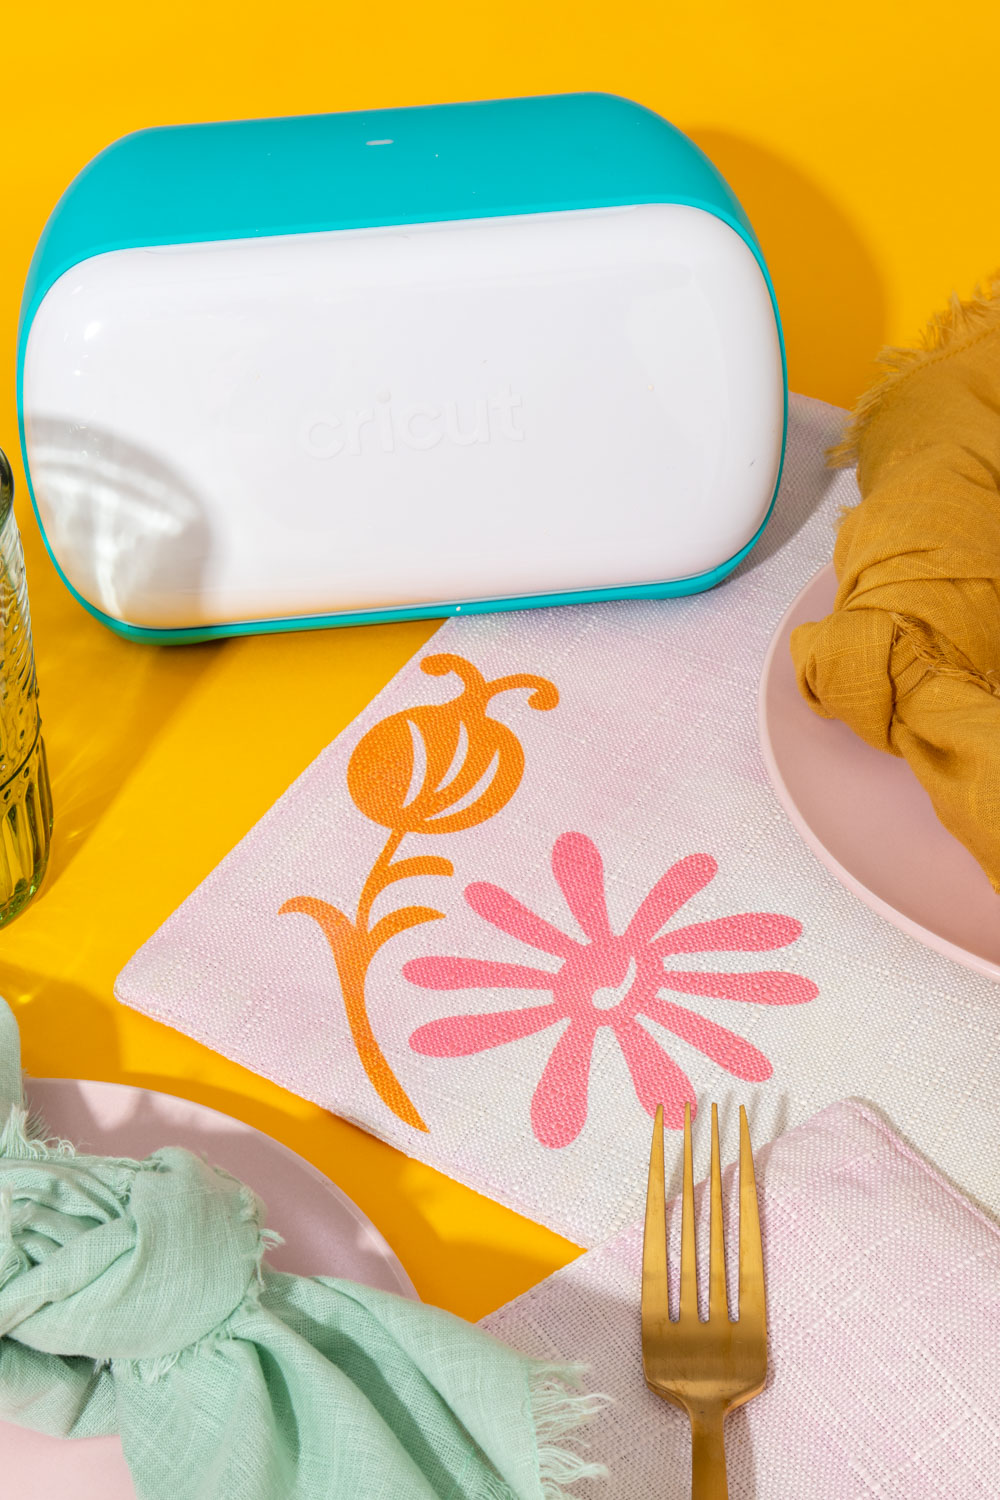 Cricut Joy next to modern placemats with floral pattern